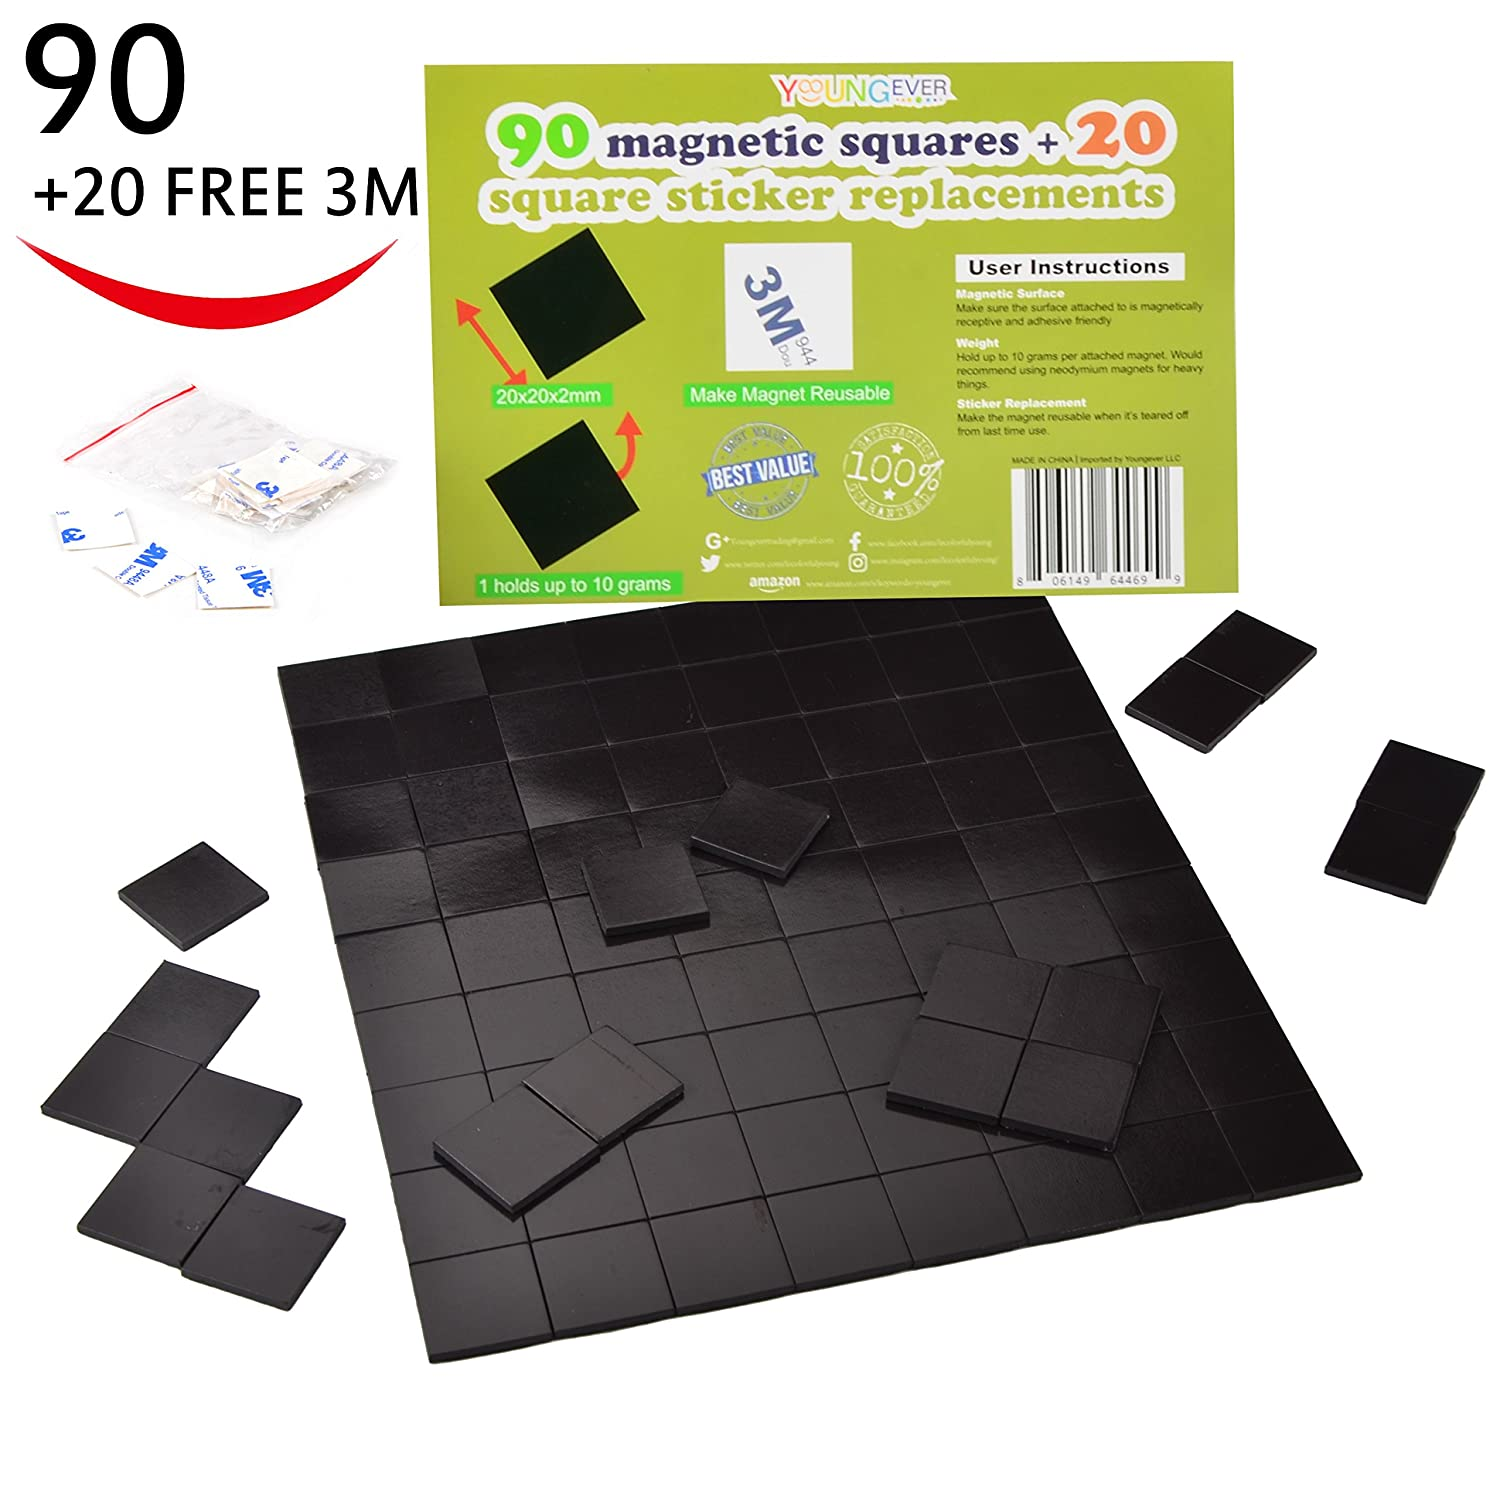 Adhesive Magnets Magnetic Tape Squares , 1 Tape Sheet of 90 Refrigerator Magnets(20x20x2mm) with 20 FREE 3M Double Sided Tape , Self Adhesive/Reusable. Perfect for Fridge Organization, DIY Art Project